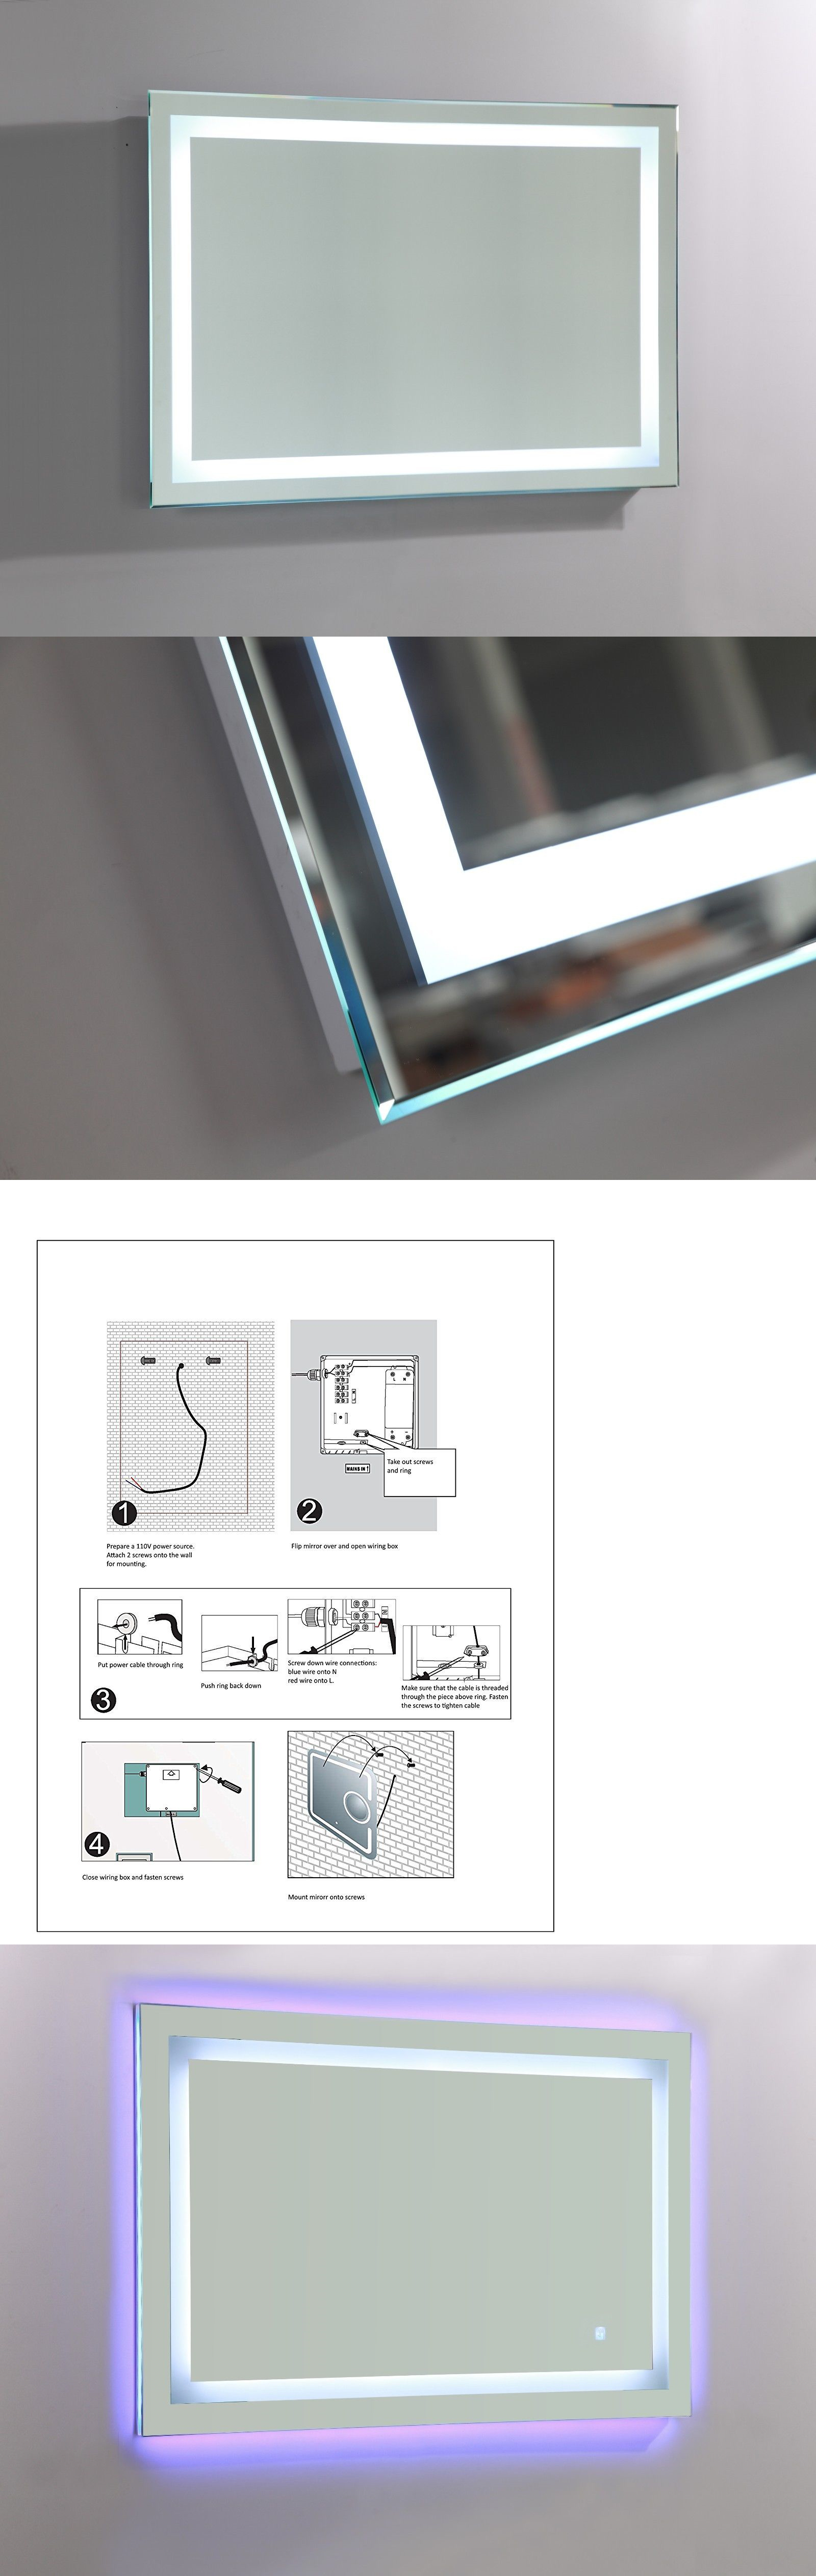 Mirrors Led Lighted Vanity Bathroom Mirror With Touch Sensor